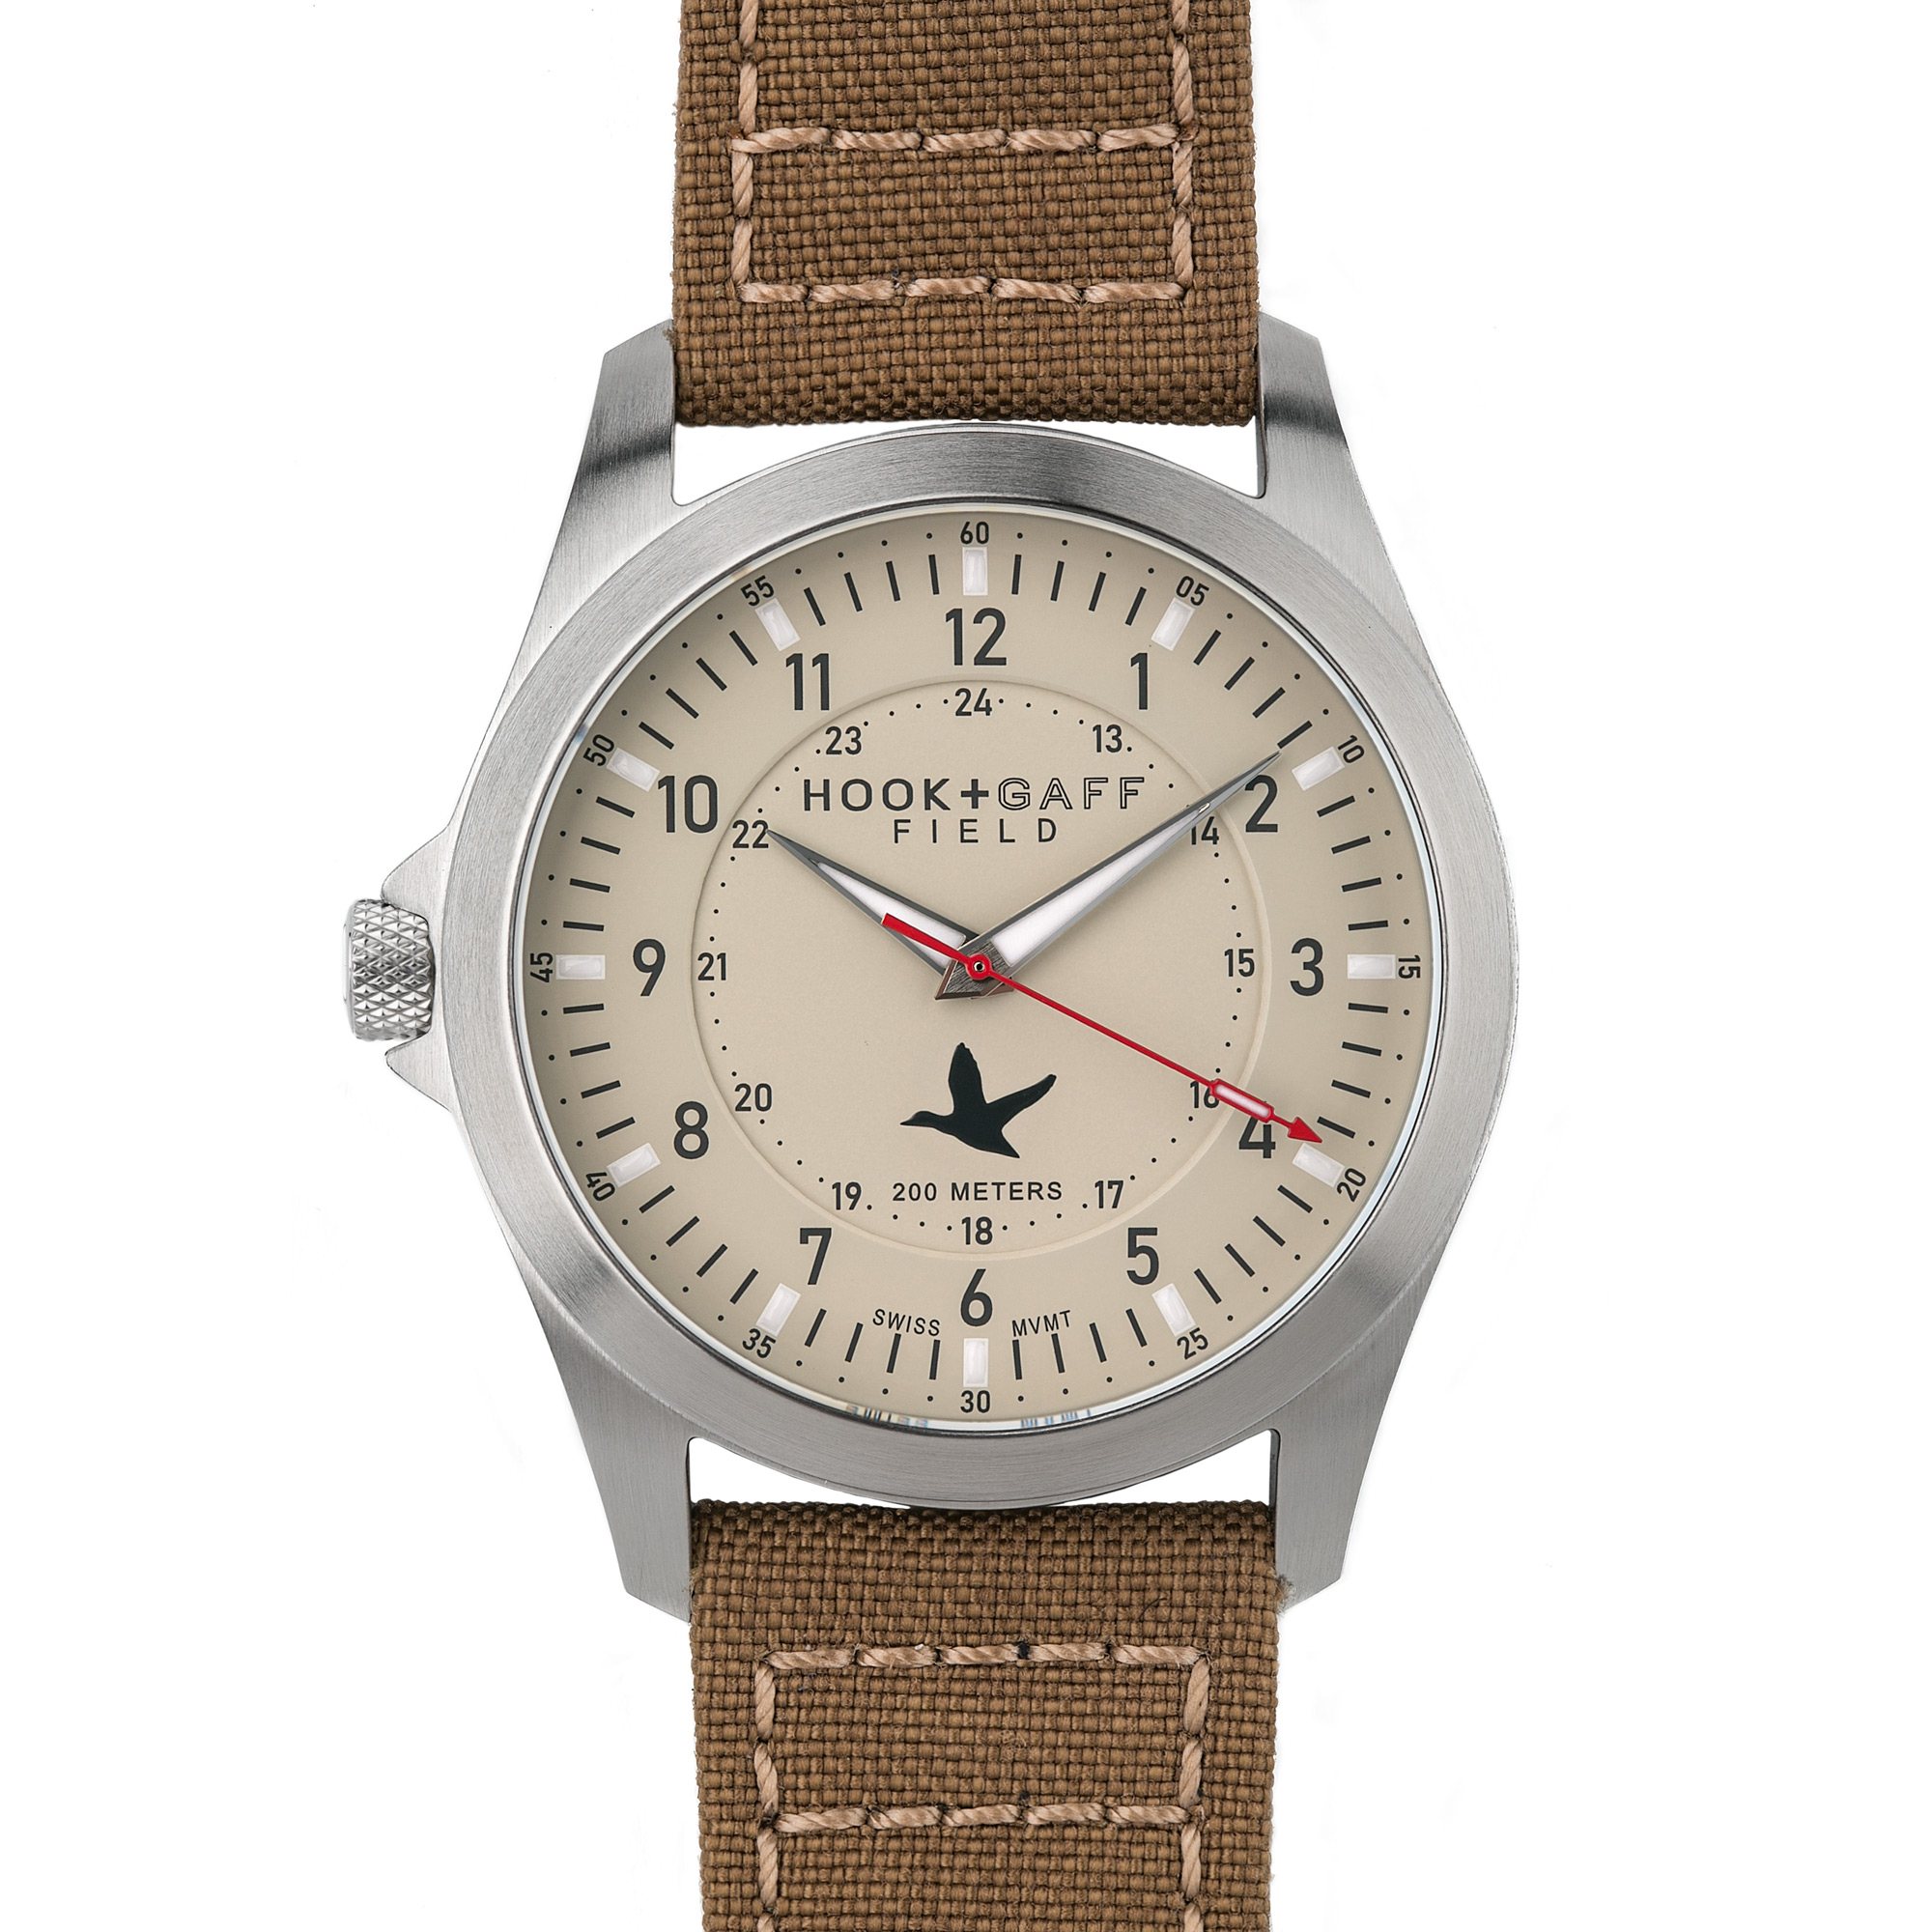 Hook+Gaff Rugged Field Watch